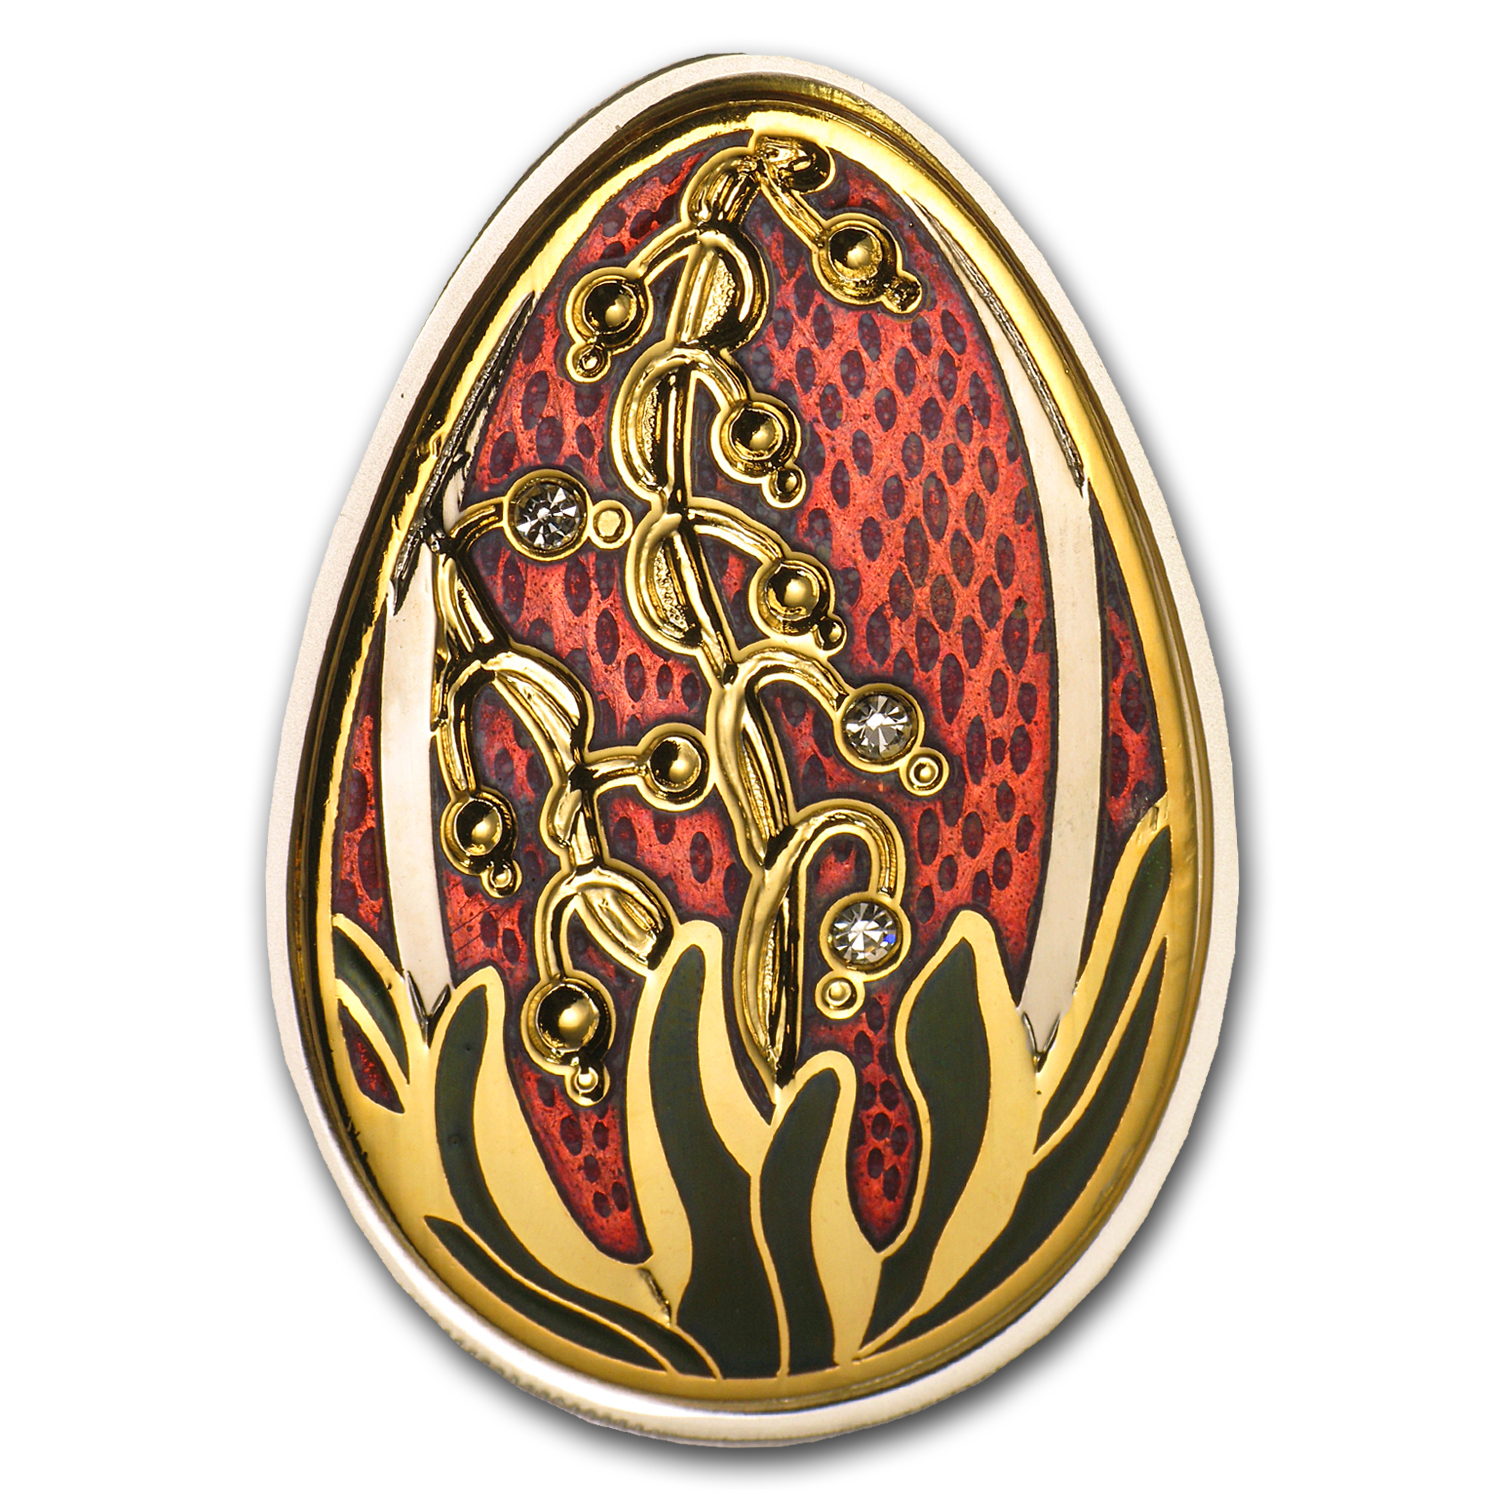 2013 Cook Islands Silver Imperial Egg in Cloisonné Beauty in Red